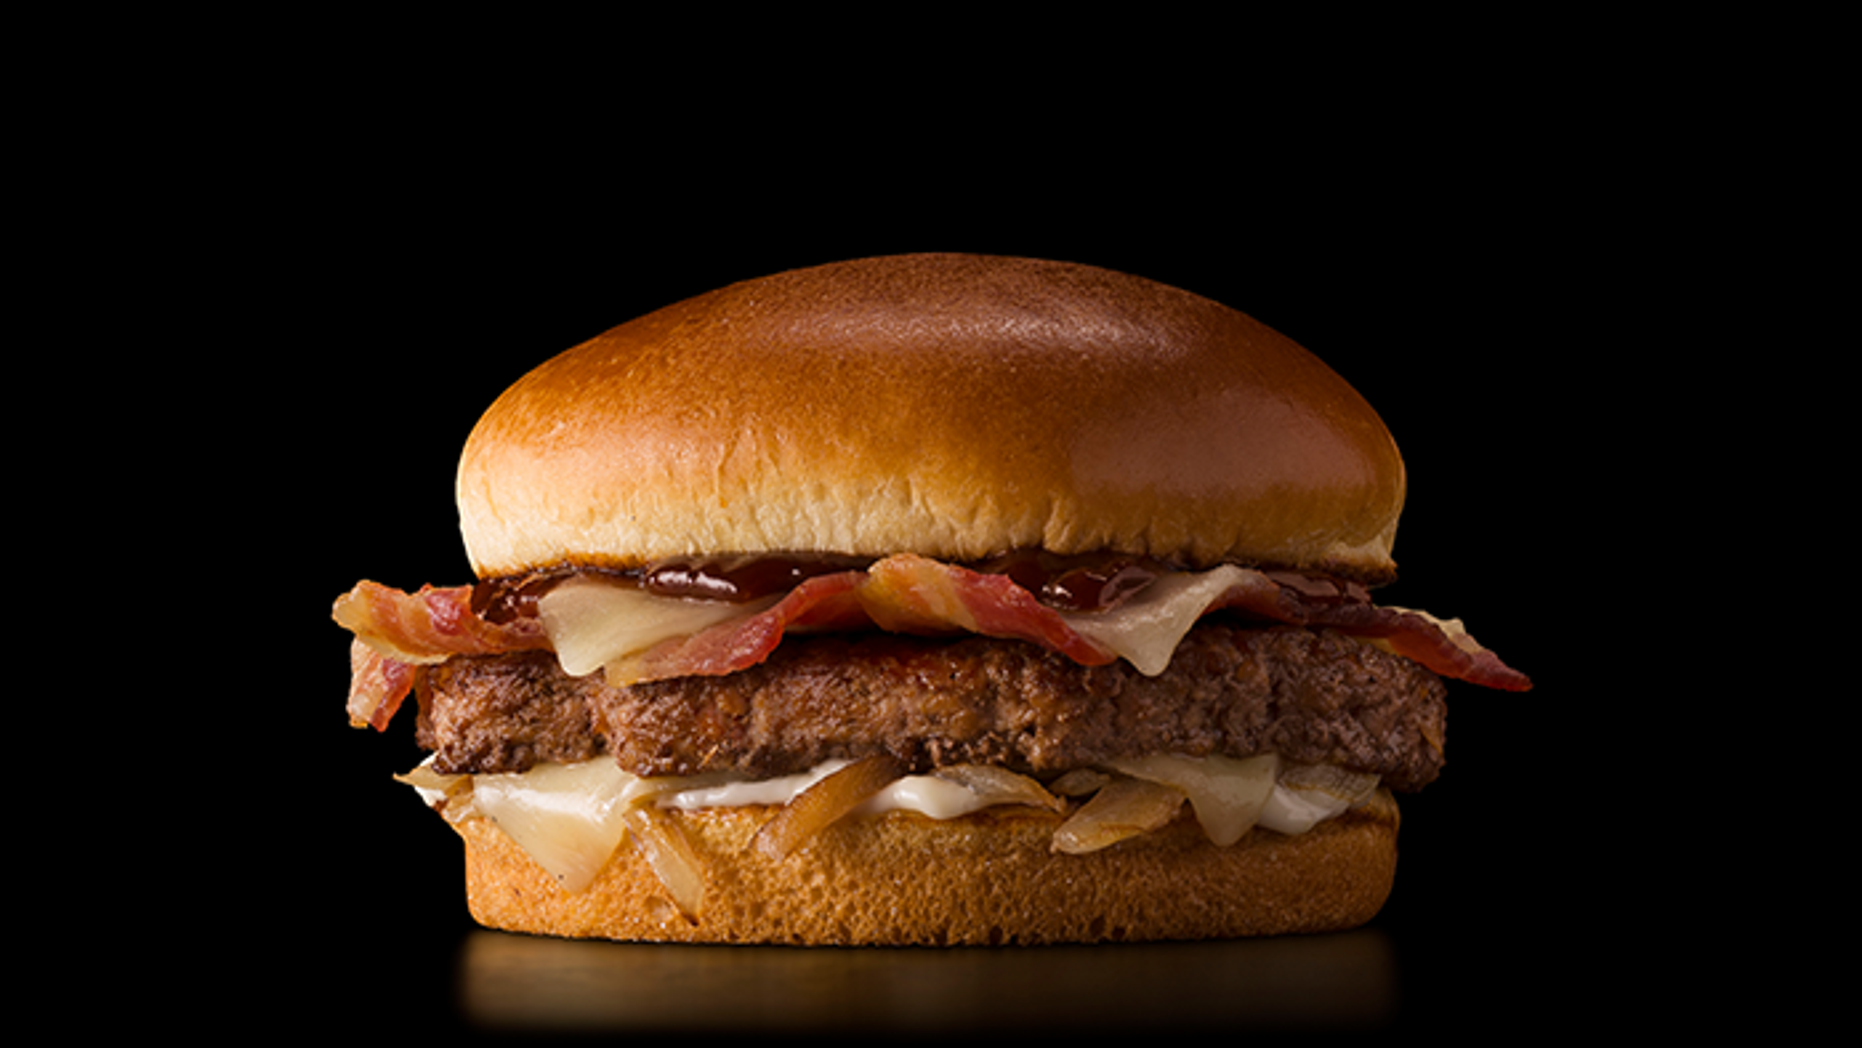 This McDonald's is expanding a general menu again with menu equipment from India, Australia, France, Canada, and Germany - like this Cheddar BBQ Bacon Burger.